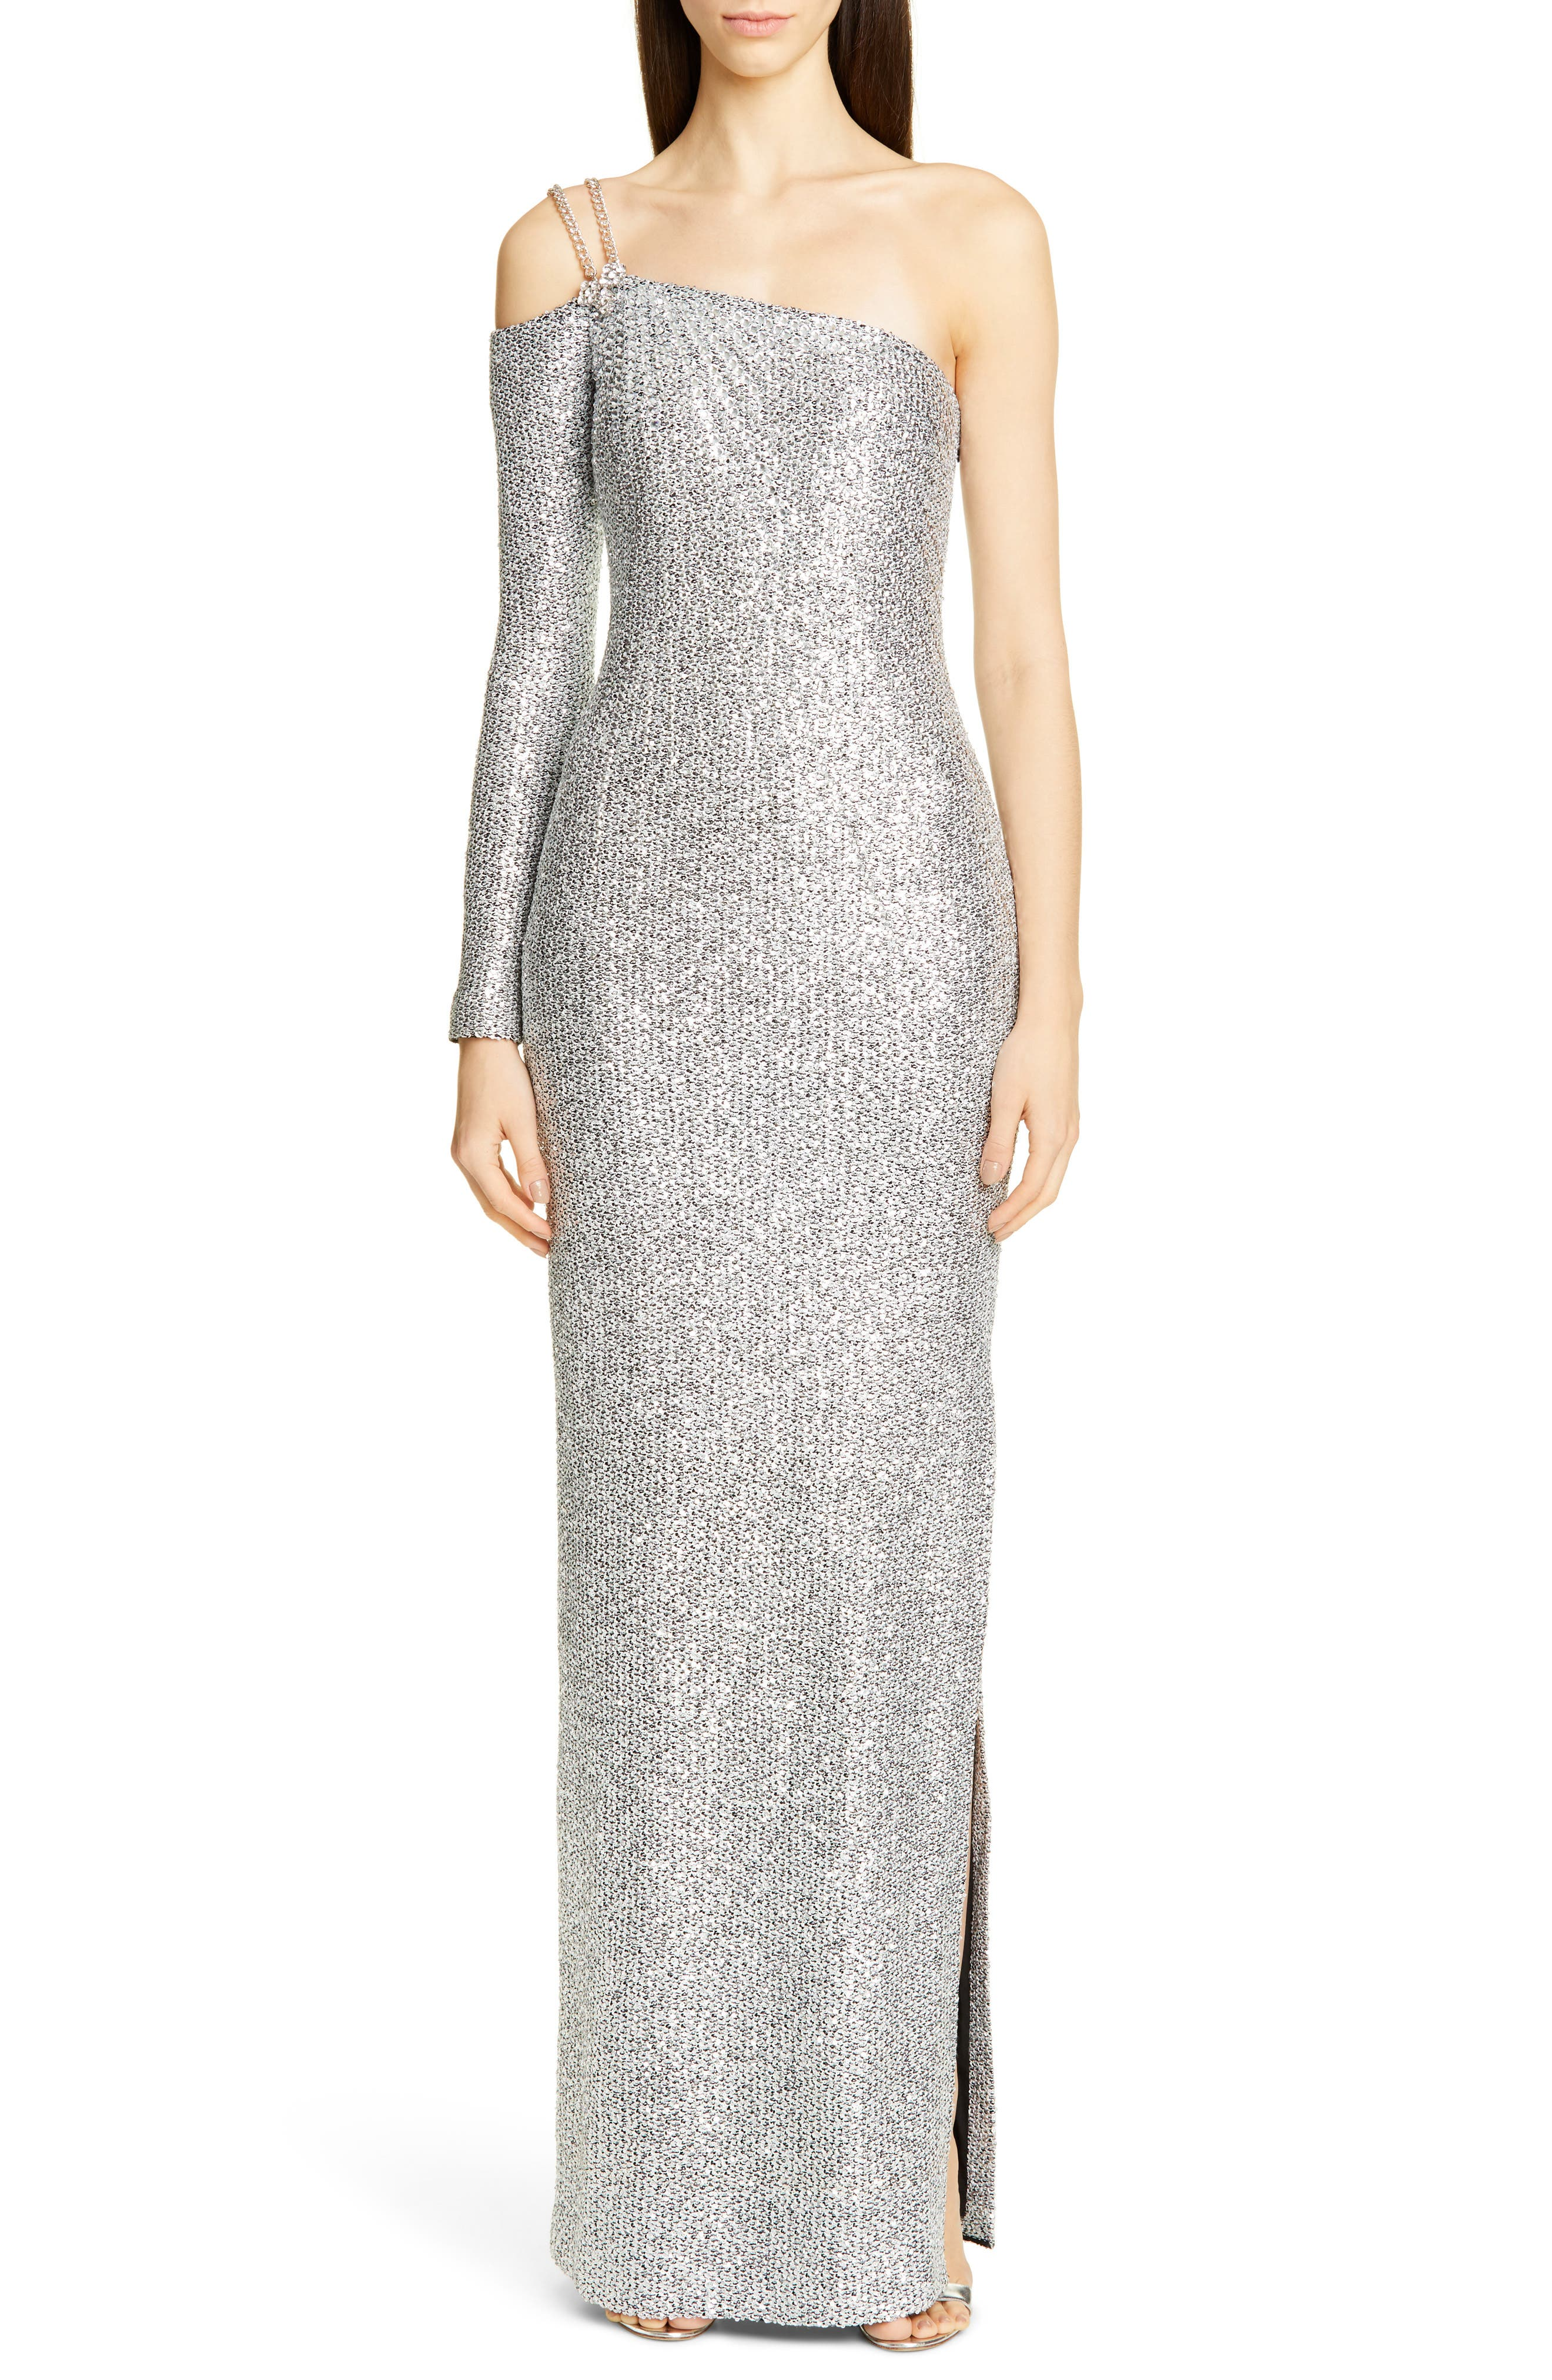 St. John Collection Statement Asymmetrical One-Shoulder Sequin Knit Gown, Metallic